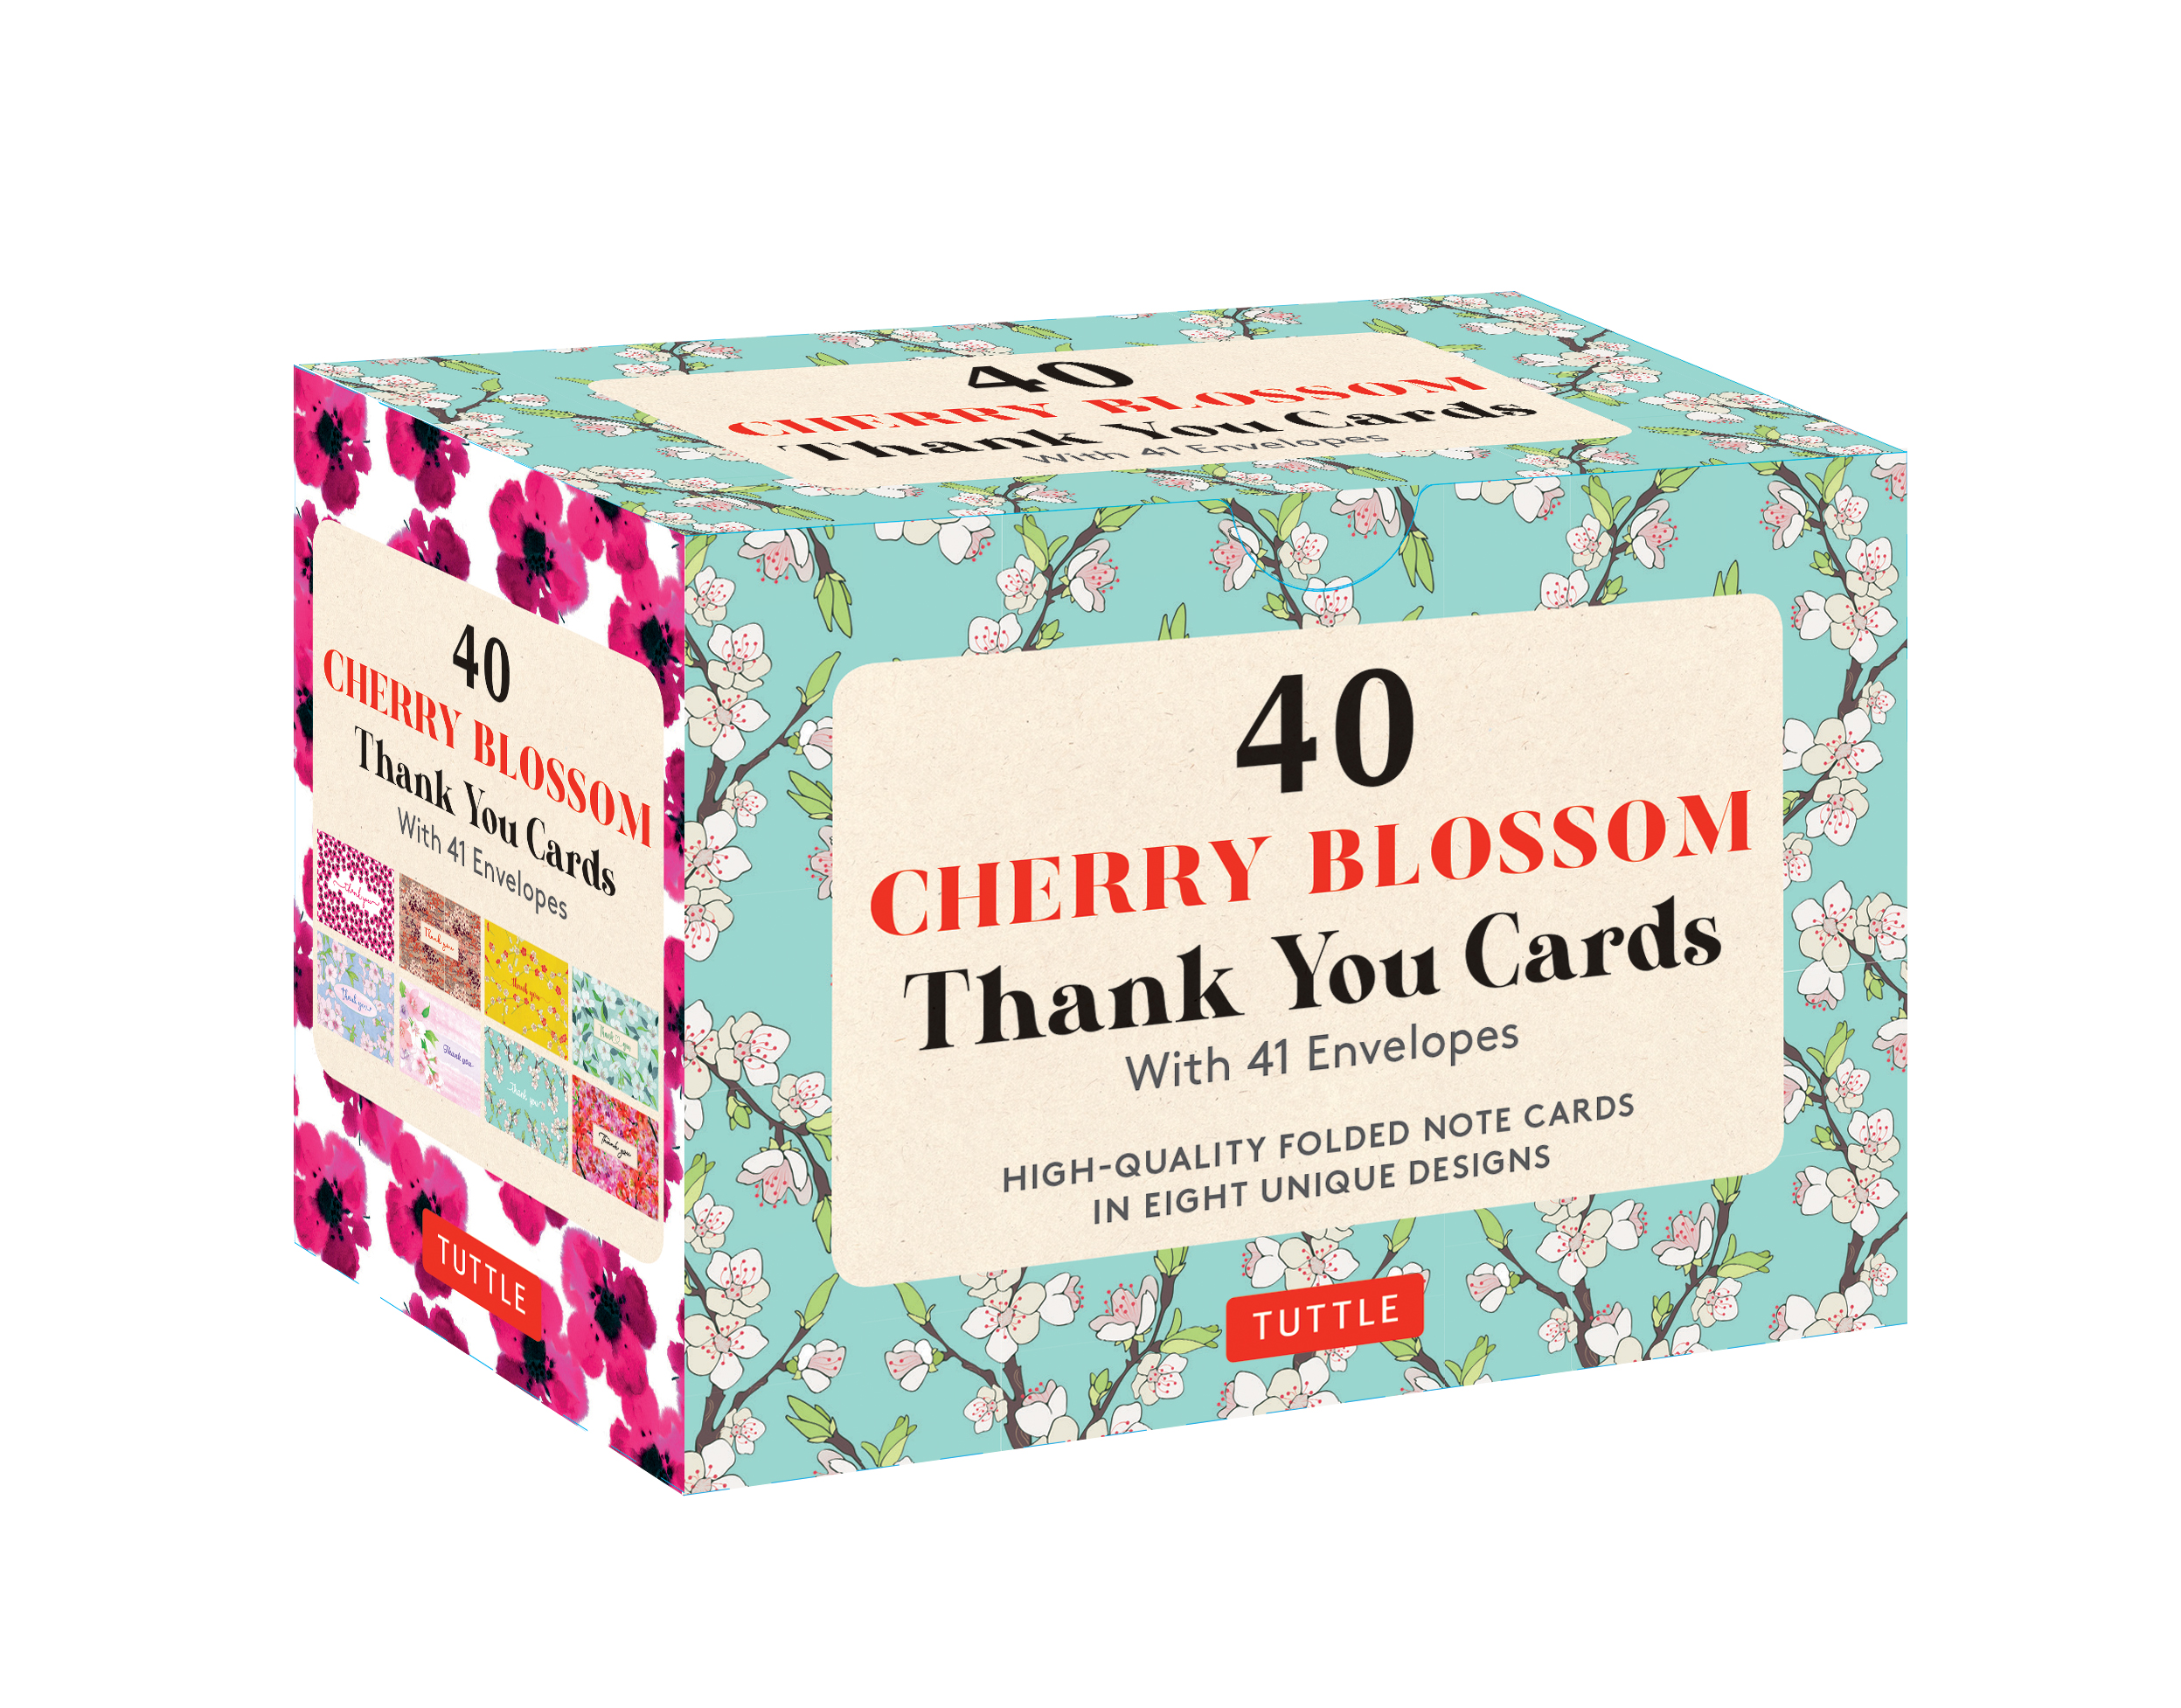 Cherry Blossoms 40 Thank You Cards with Envelopes